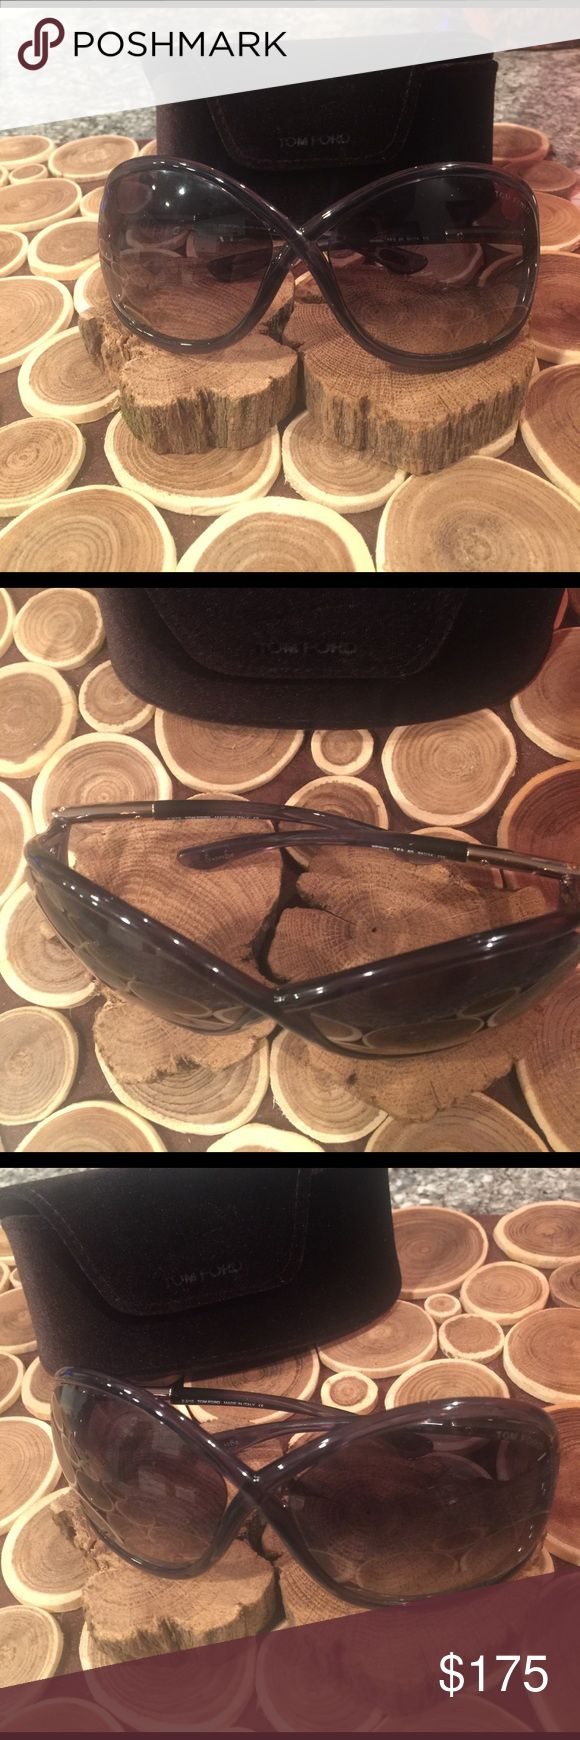 Tom ford Whitney sunglasses Authentic Tom ford sunglasses, never worn, perfect condition... these are the Whitney tom fords it is the blueish grayish it is just the reflection of the wood Tom Ford Accessories Sunglasses